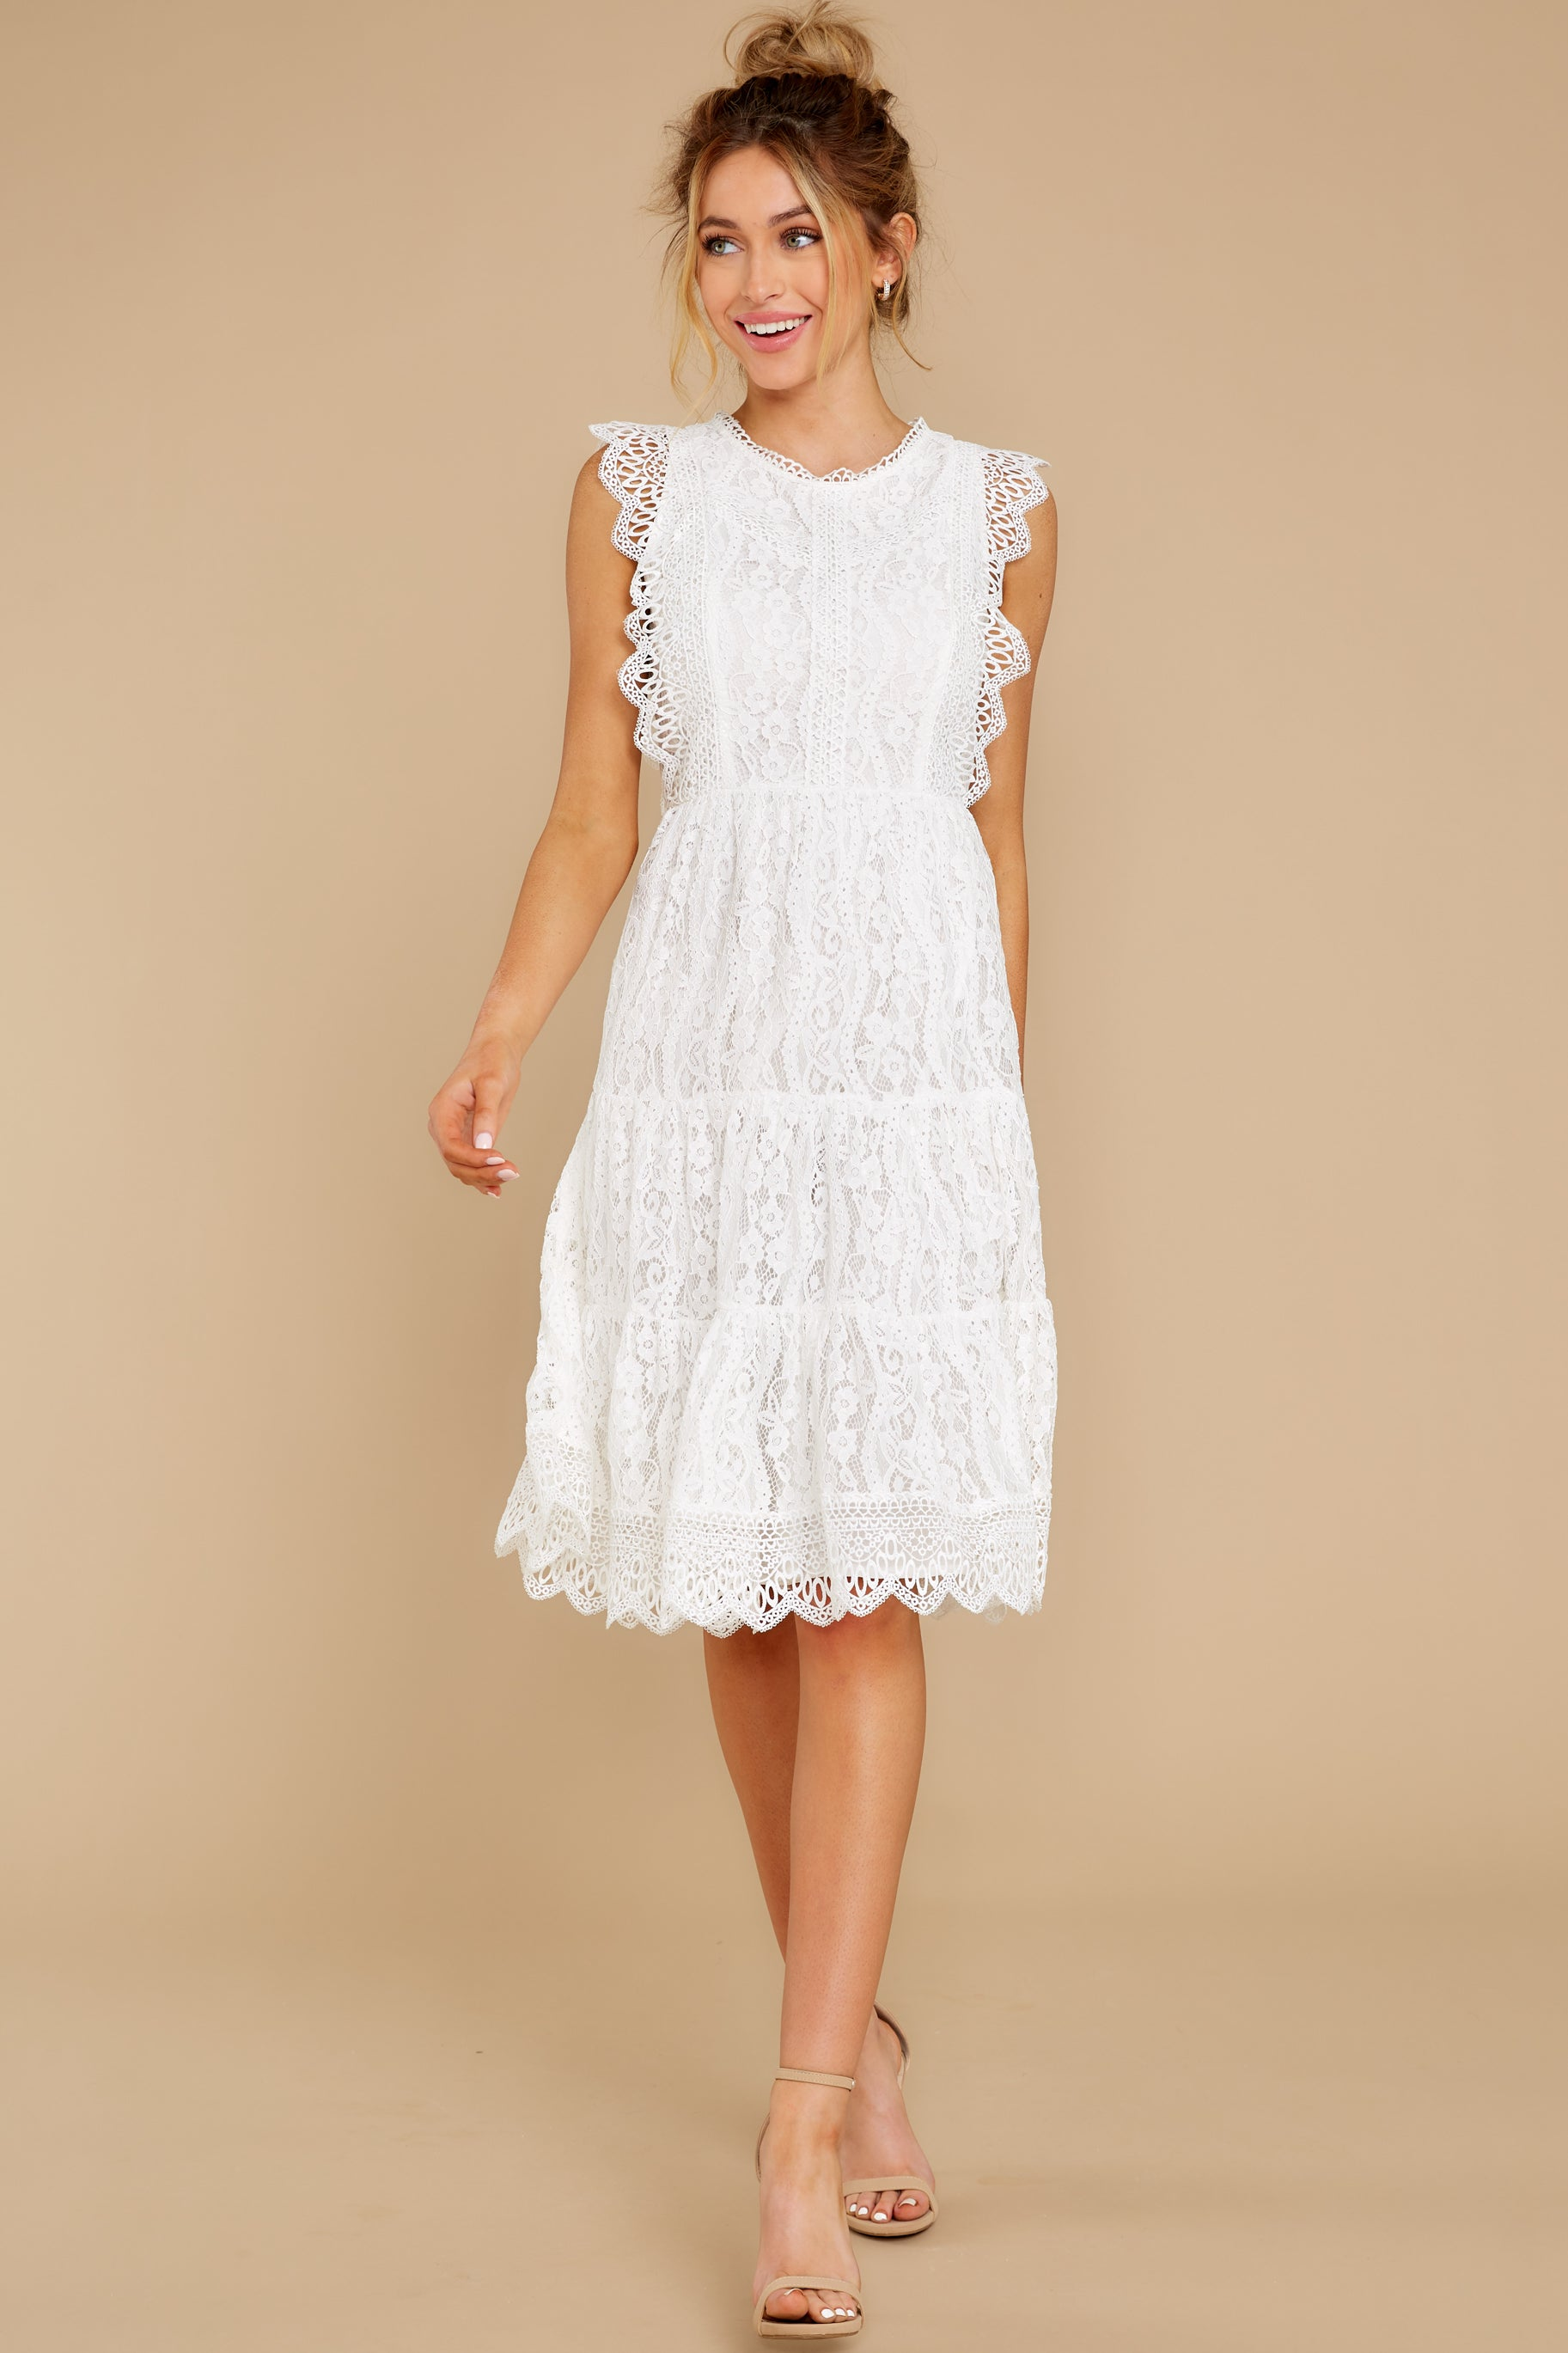 3 Simply Amazing White Lace Dress at reddress.com